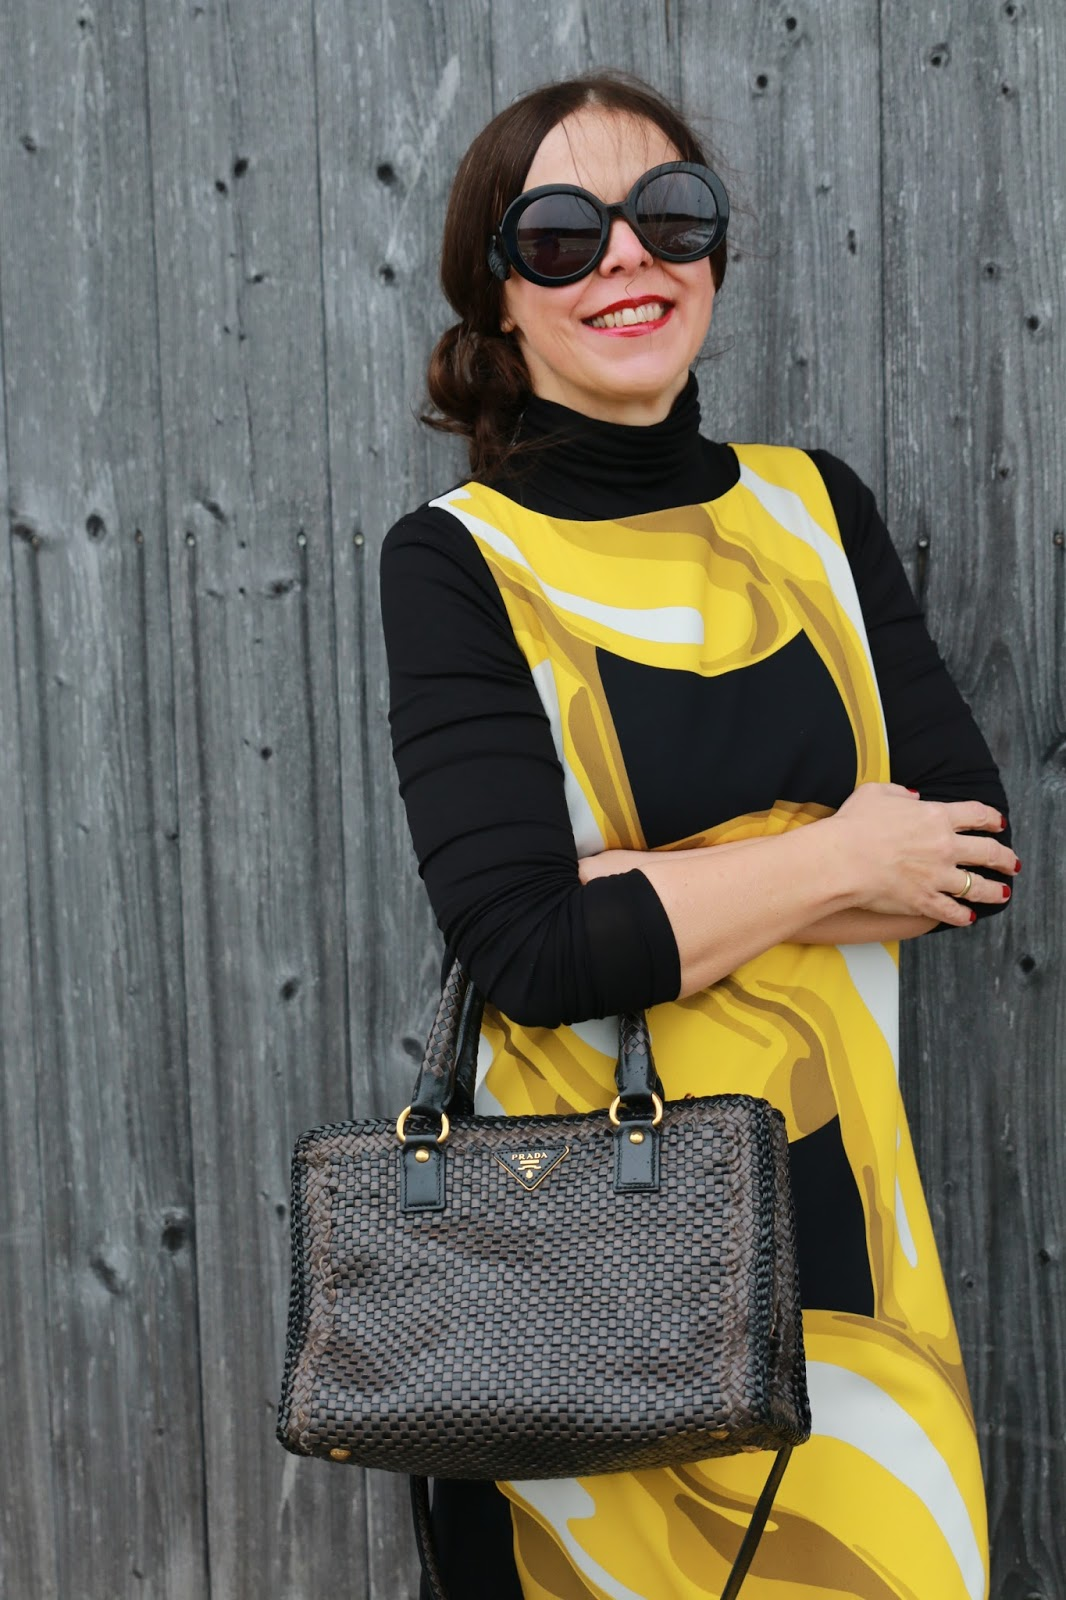 Look prada sun glasses black, Moschino chain dress, black turtleneck sweater, black buckle shoes, grey-black Prada bag